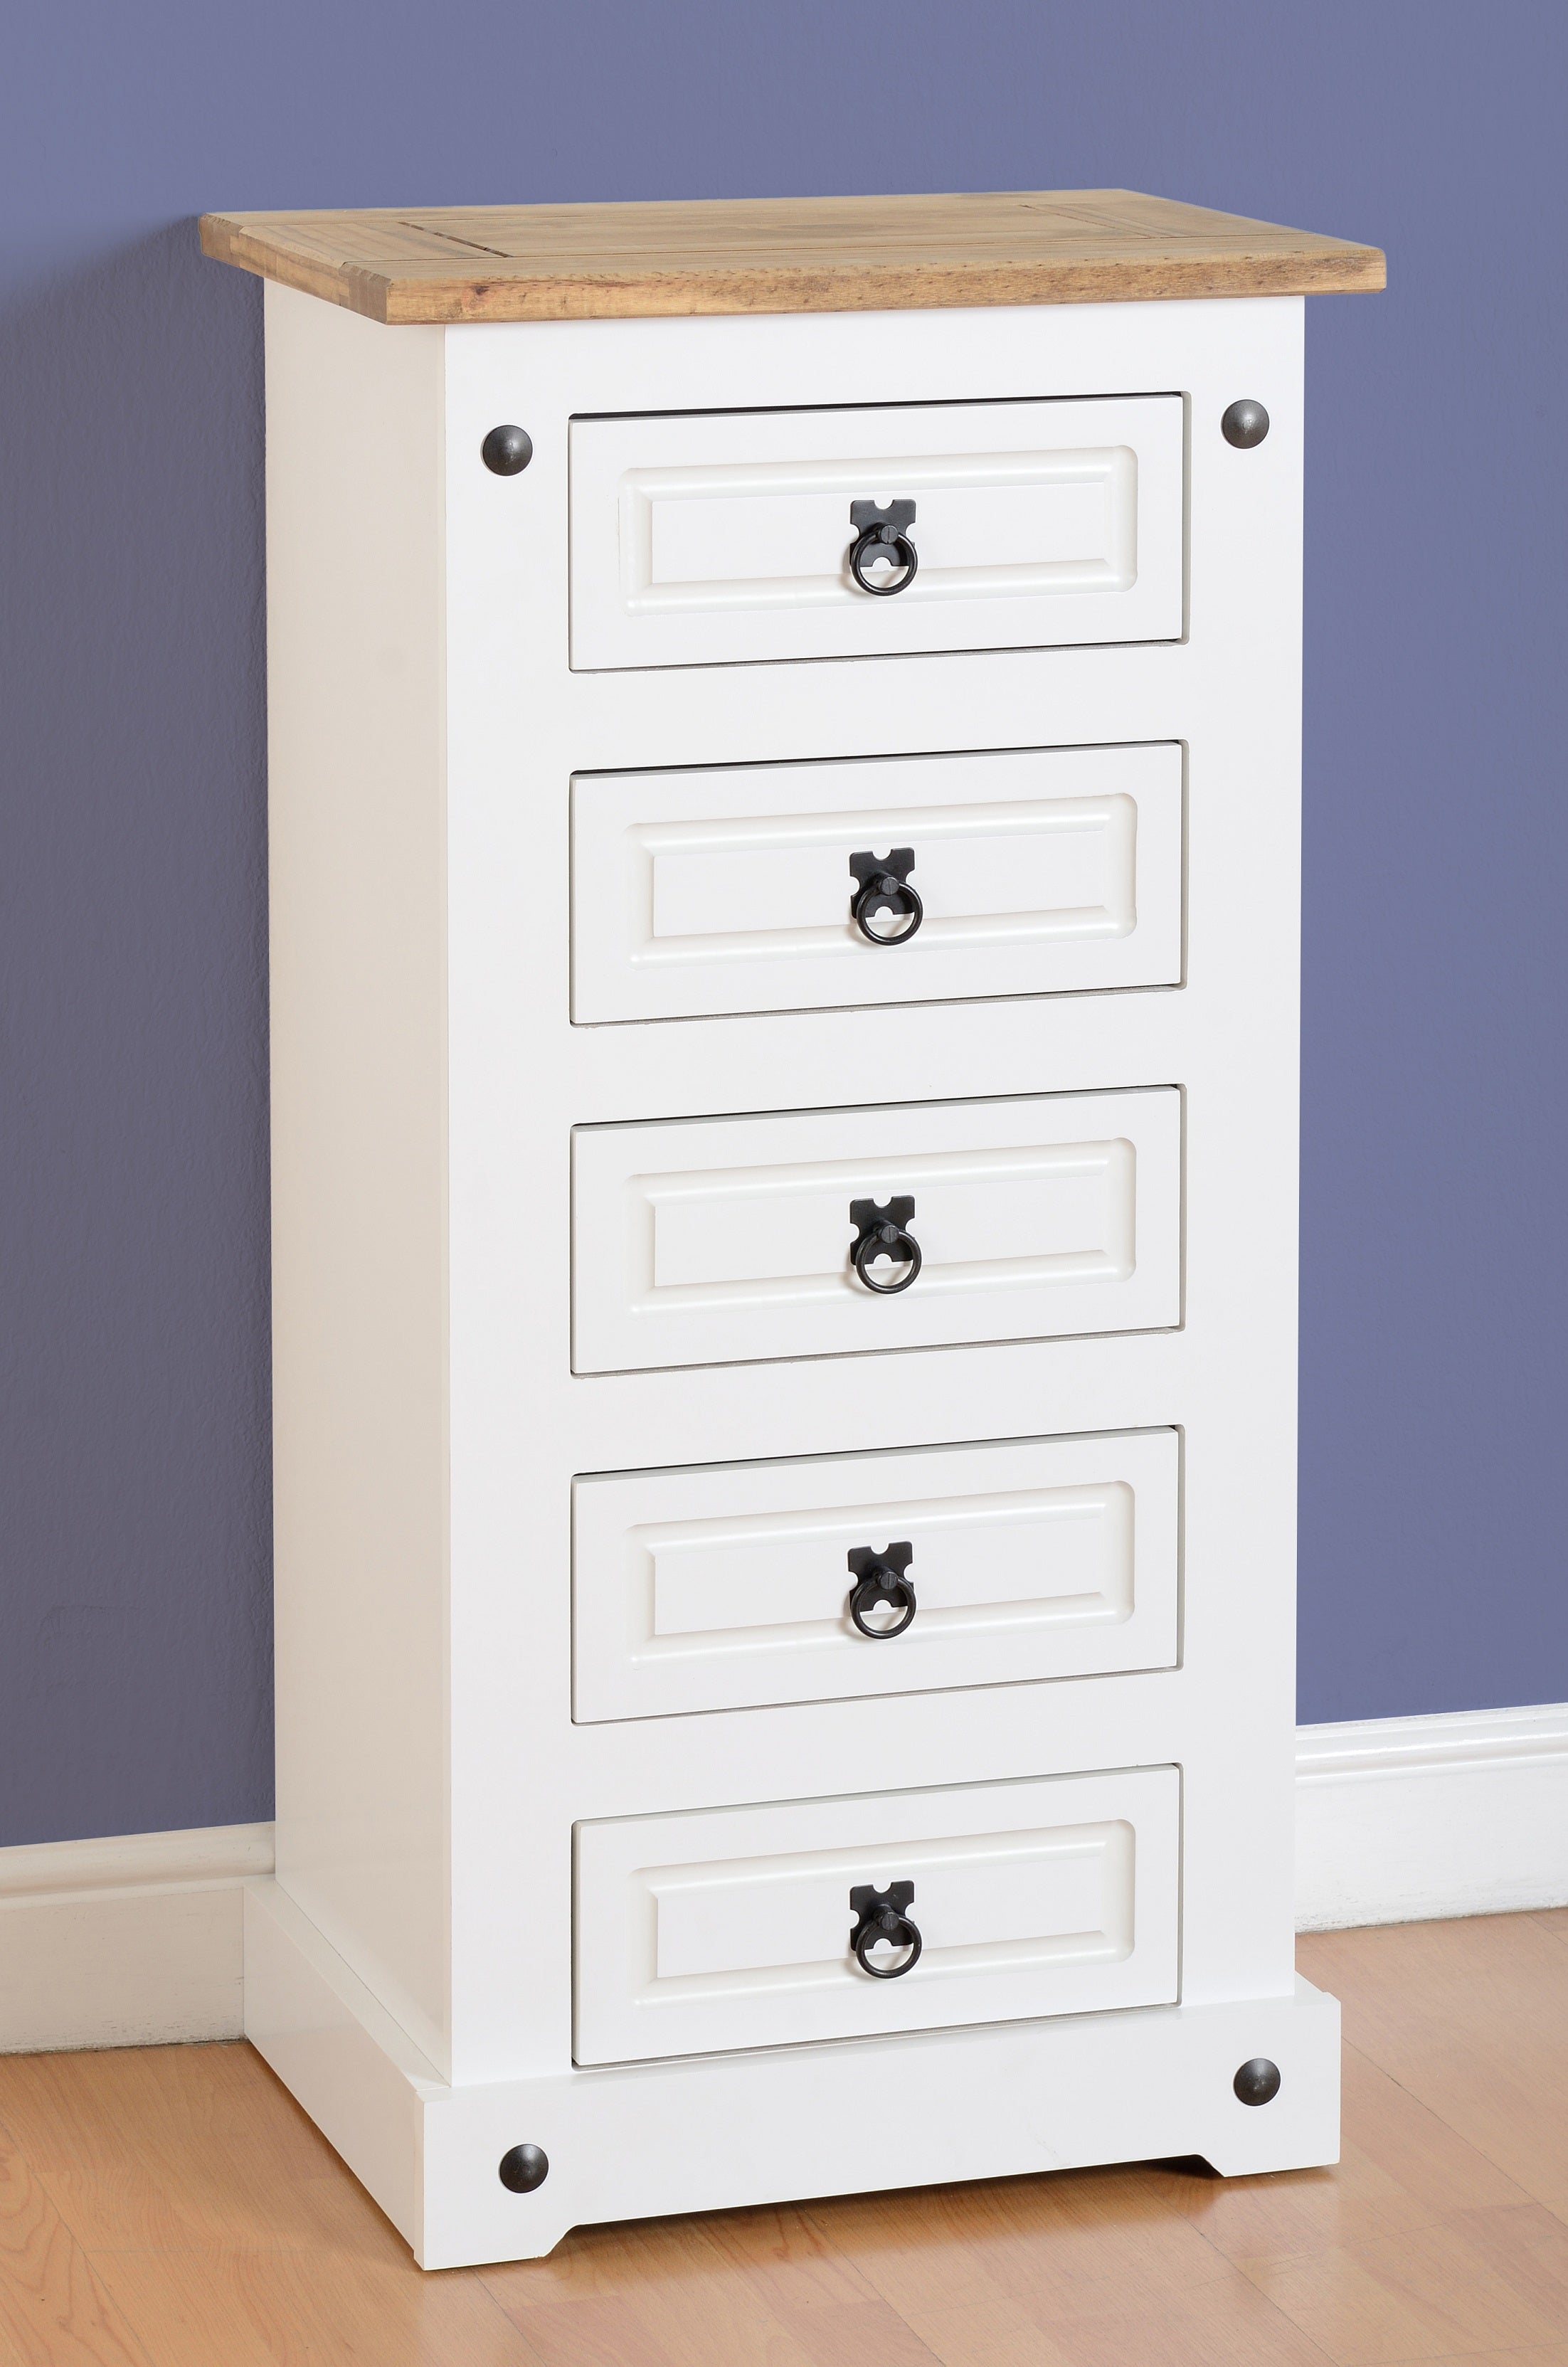 furniture drawers white modern drawer living chest room atr home tallboy